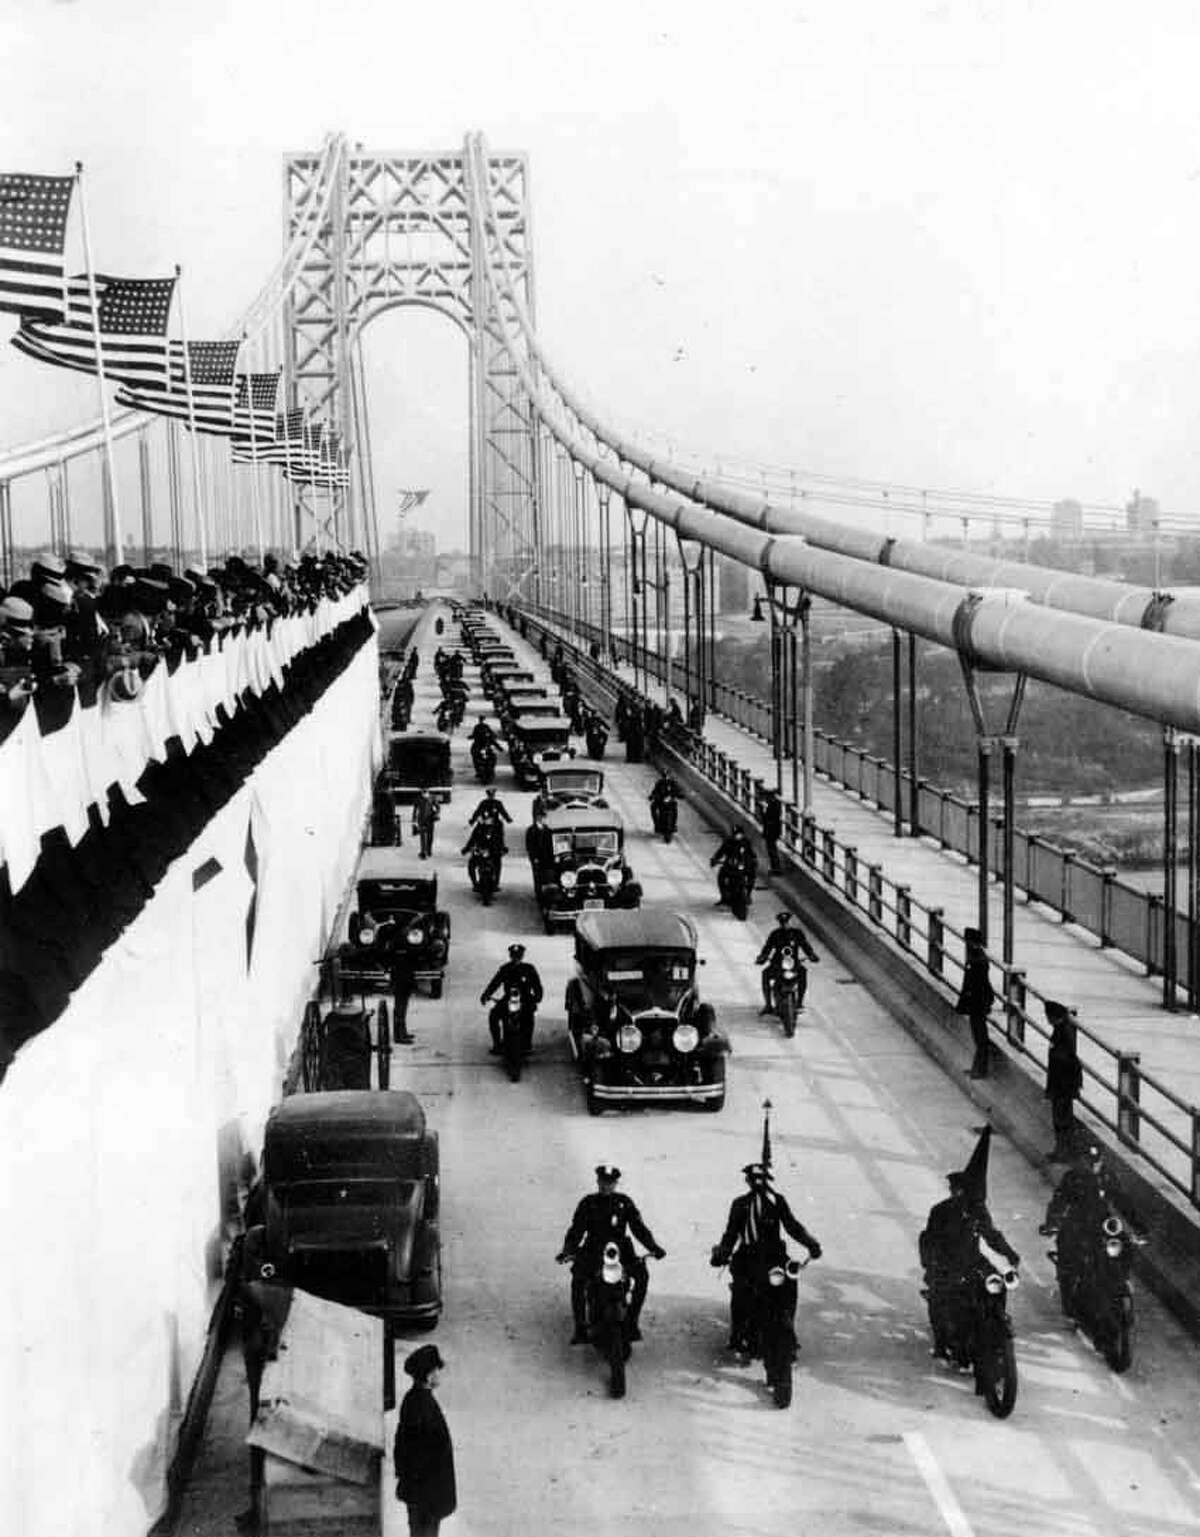 Official motorcades start across the George Washington Bridge during the dedication ceremonies in New York City on Oct. 24, 1931. The world's longest suspension bridge, costing $60 million, links New York with New Jersey. (AP Photo)